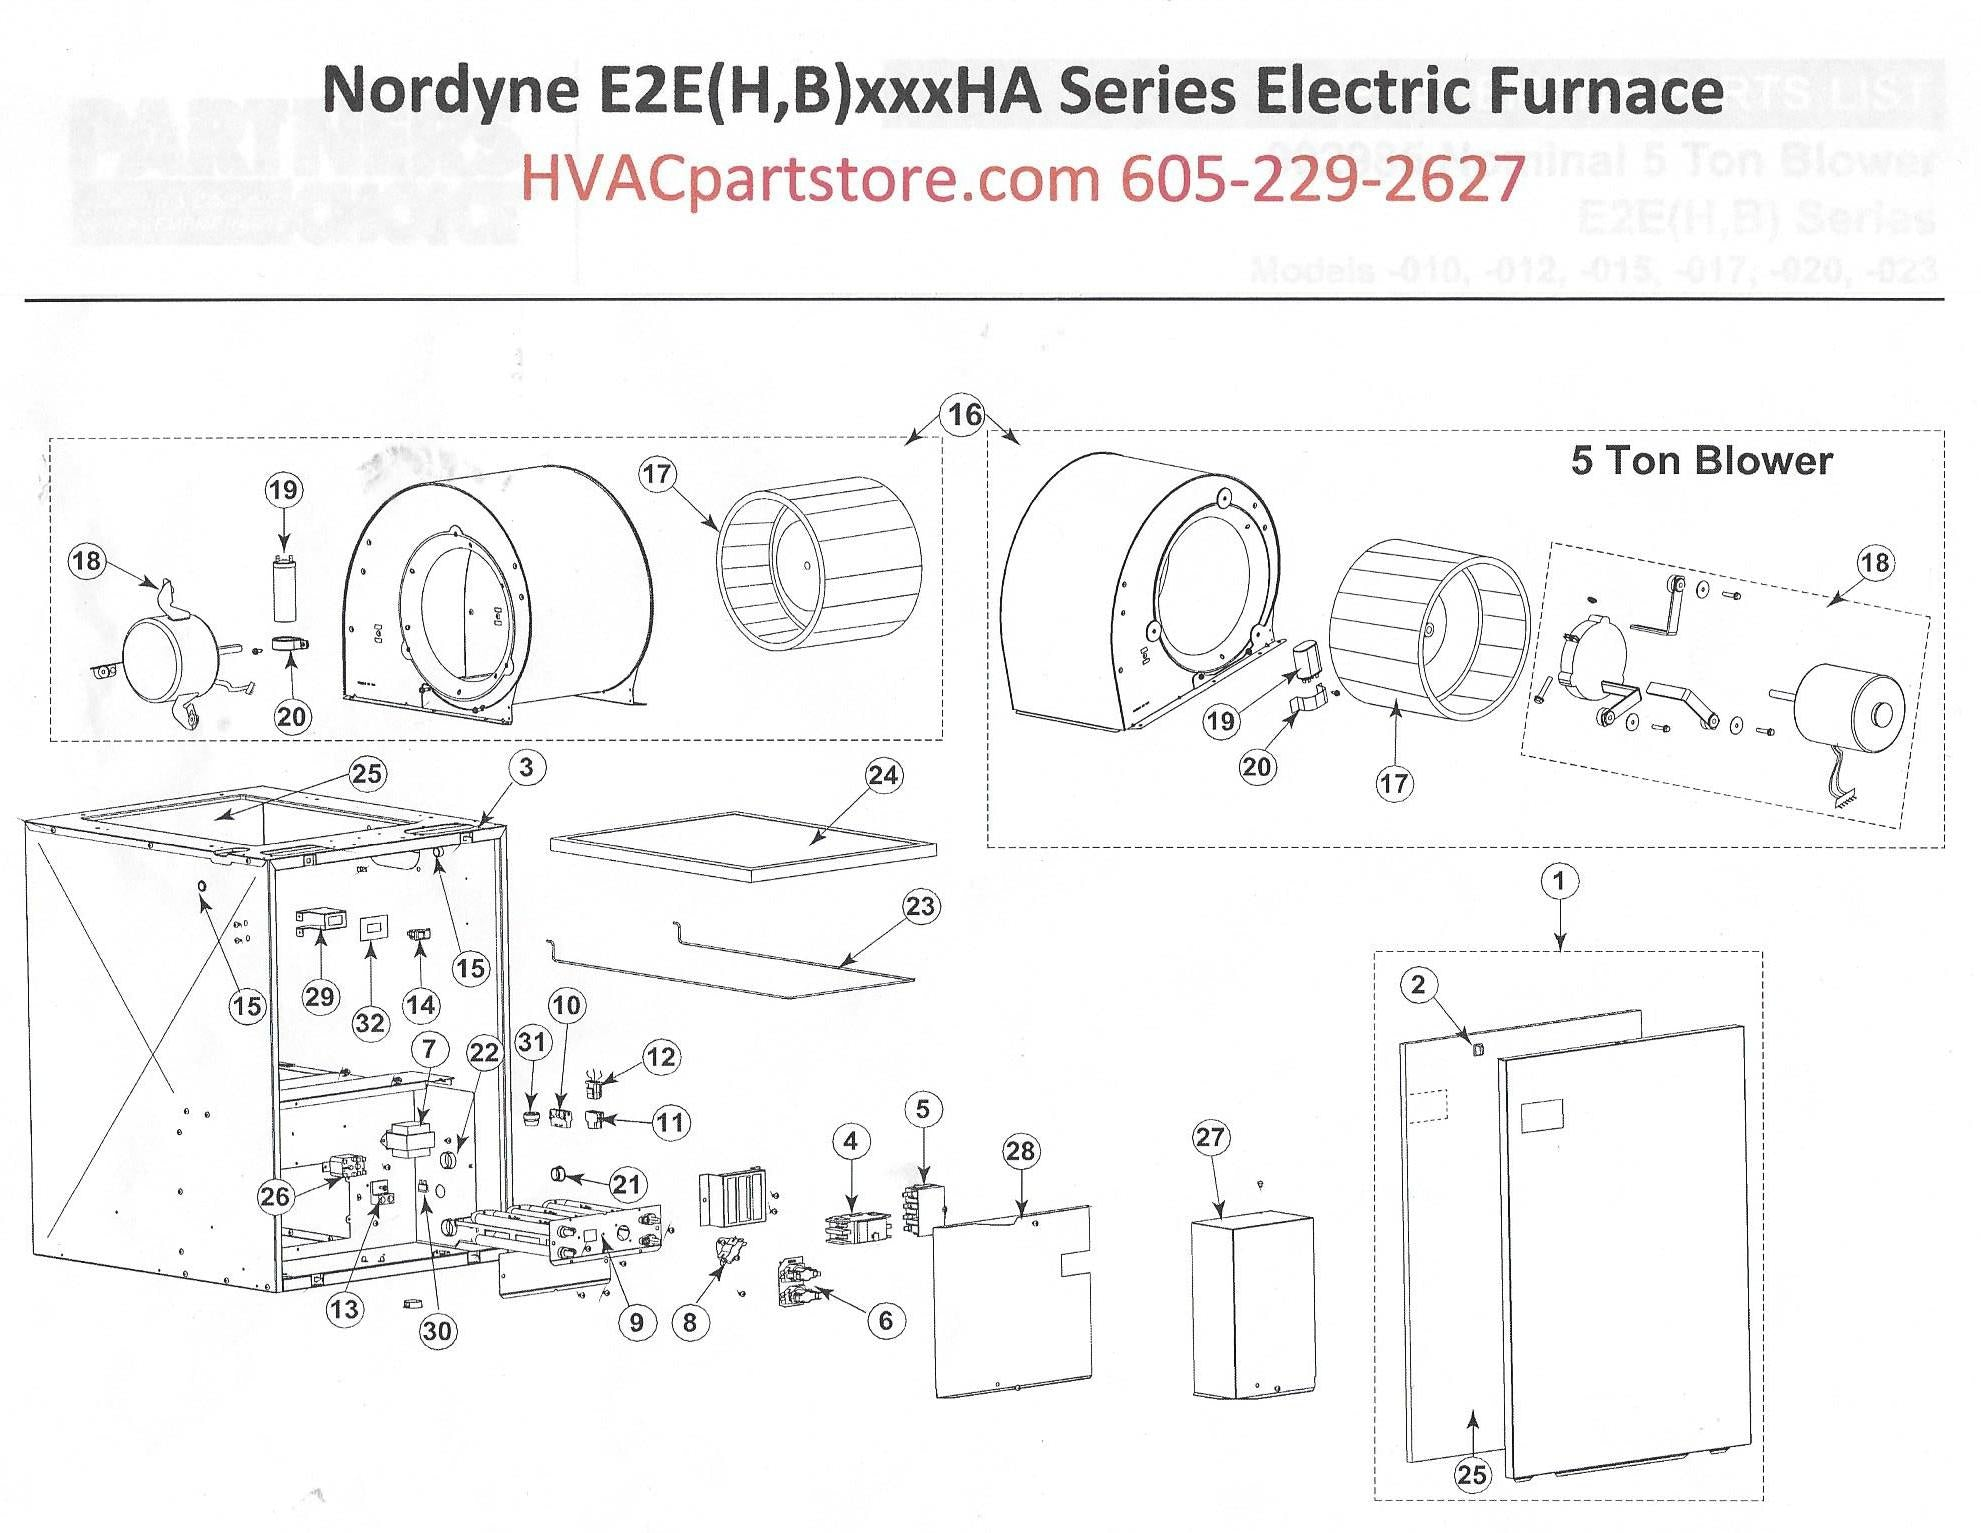 E2HADiagram_2abb159a 7eb1 4d20 871c c9c3b5366288 electric furnace wiring diagrams e2eb 015hb dolgular com E2EH 015Ha Wiring-Diagram at readyjetset.co